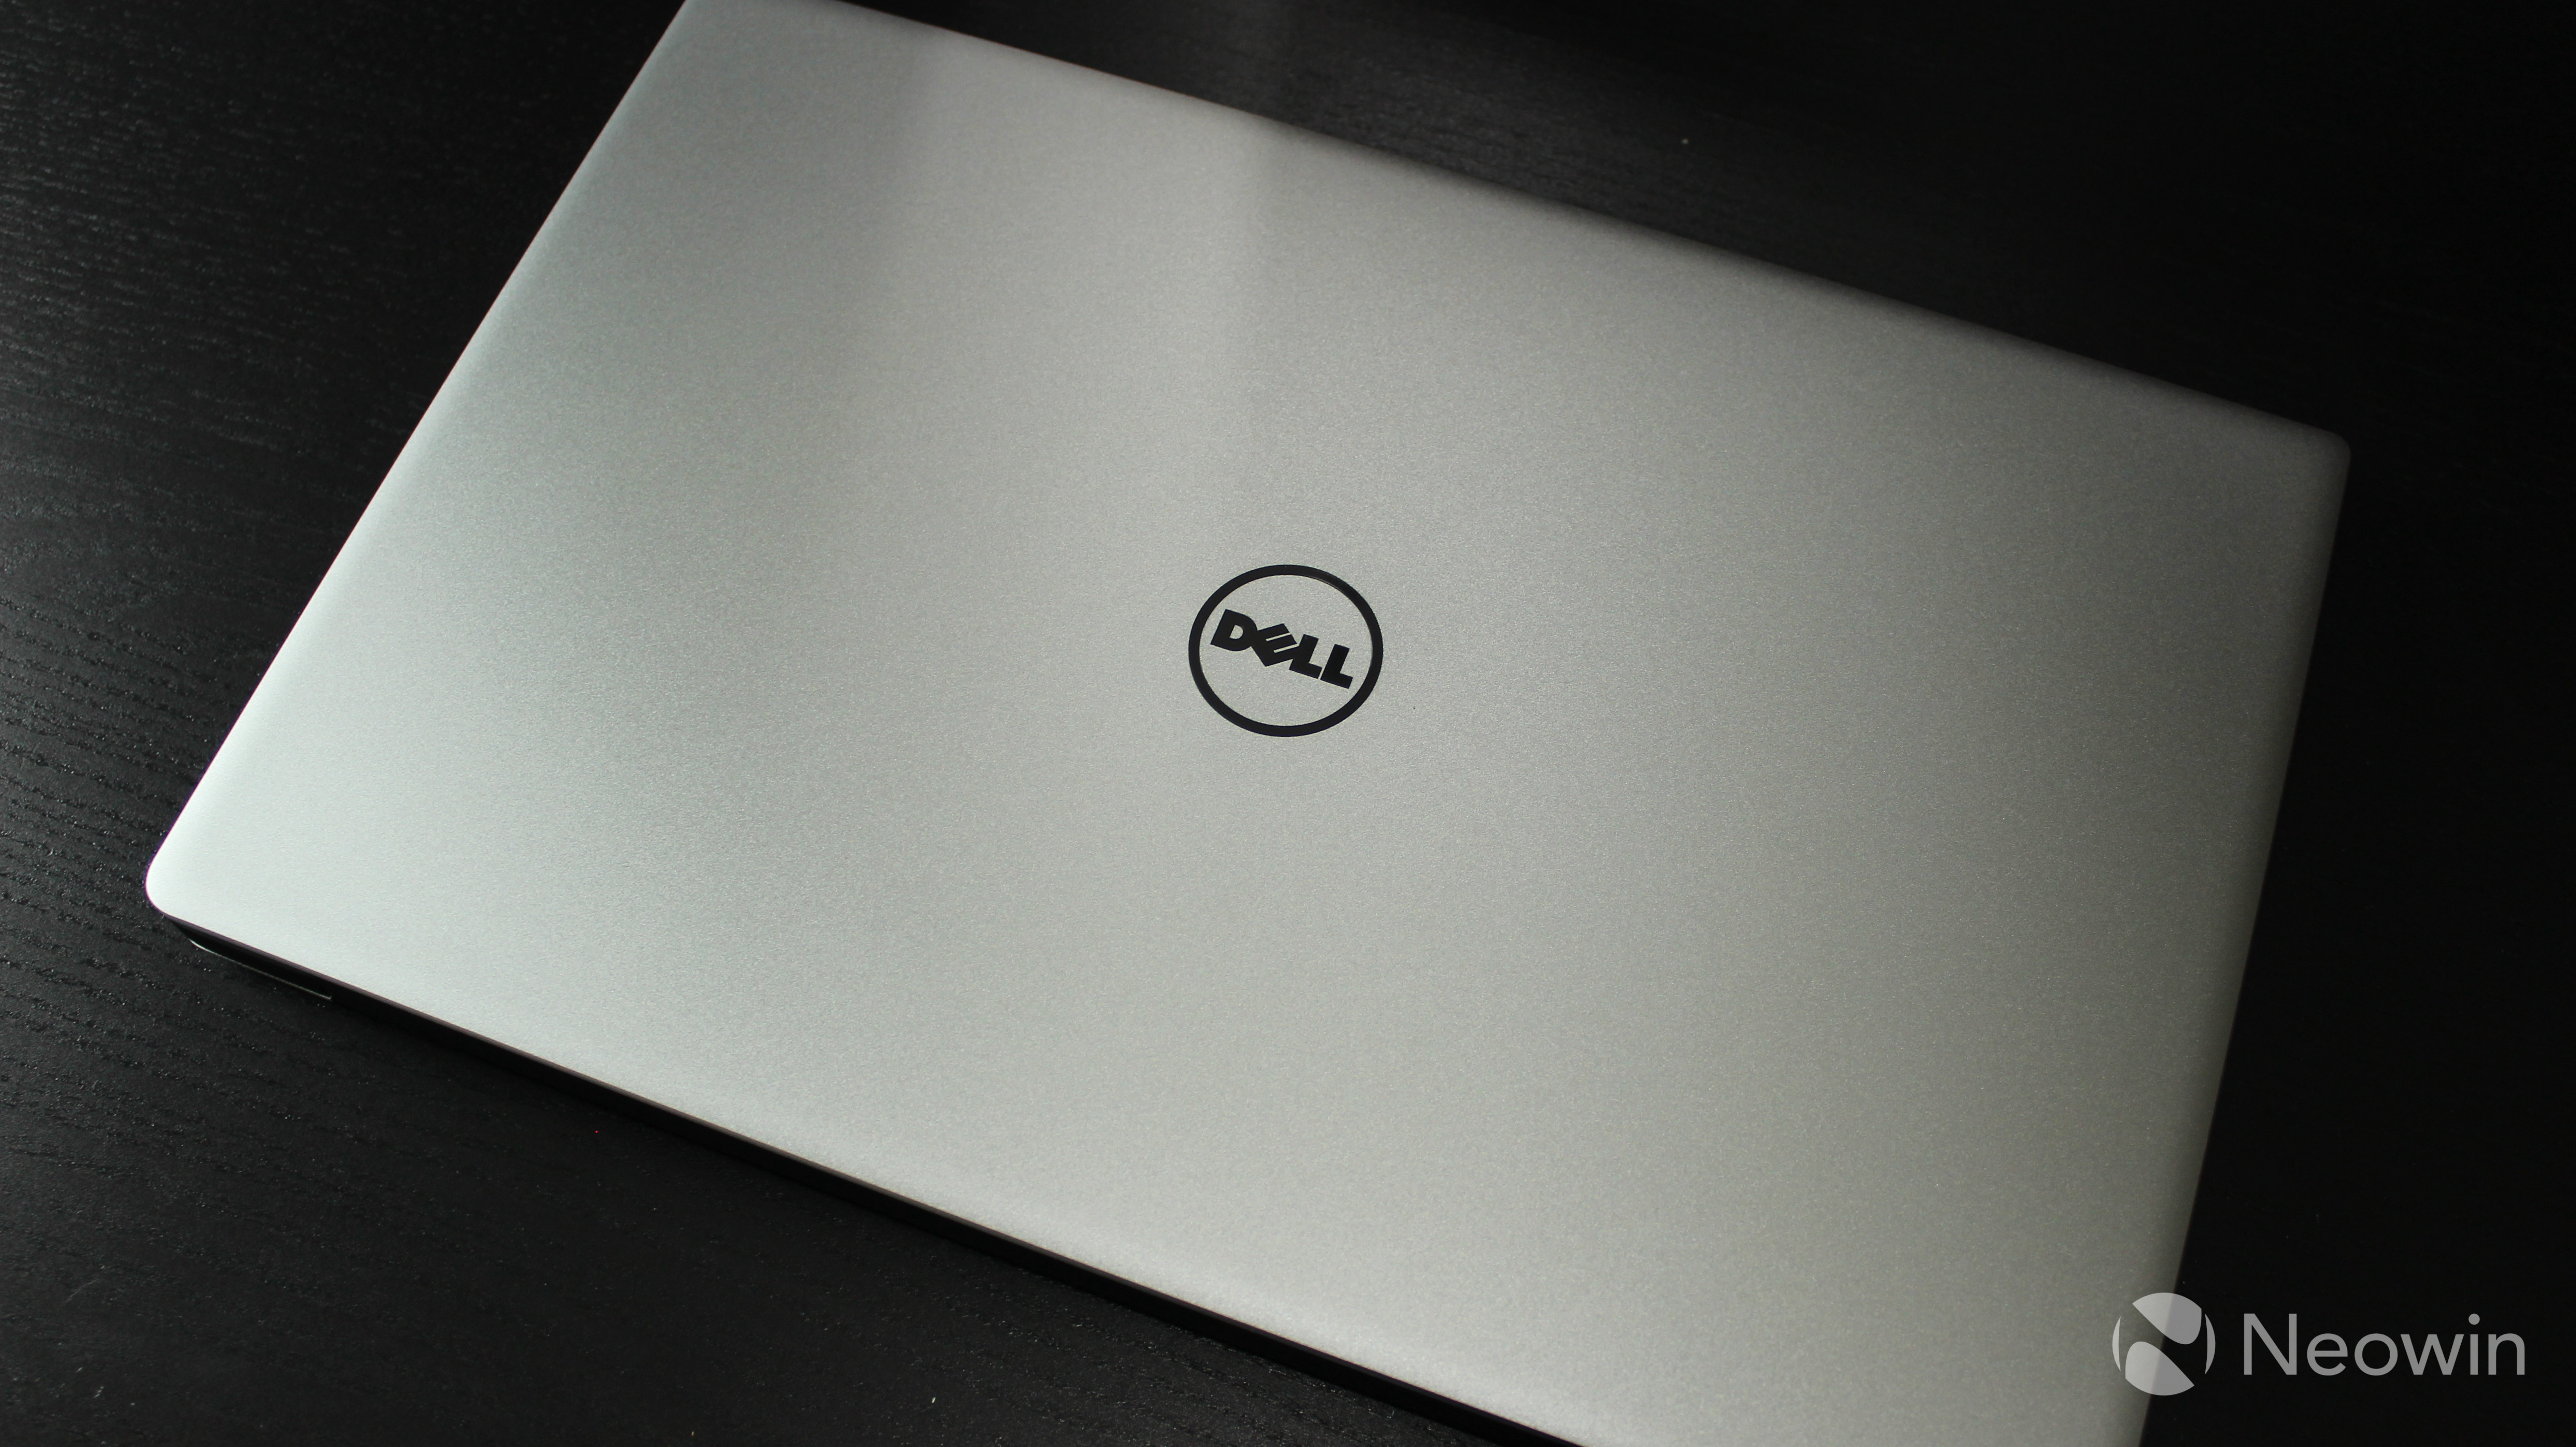 Dell XPS 13 (late 2017) review: A great laptop with an unimpressive